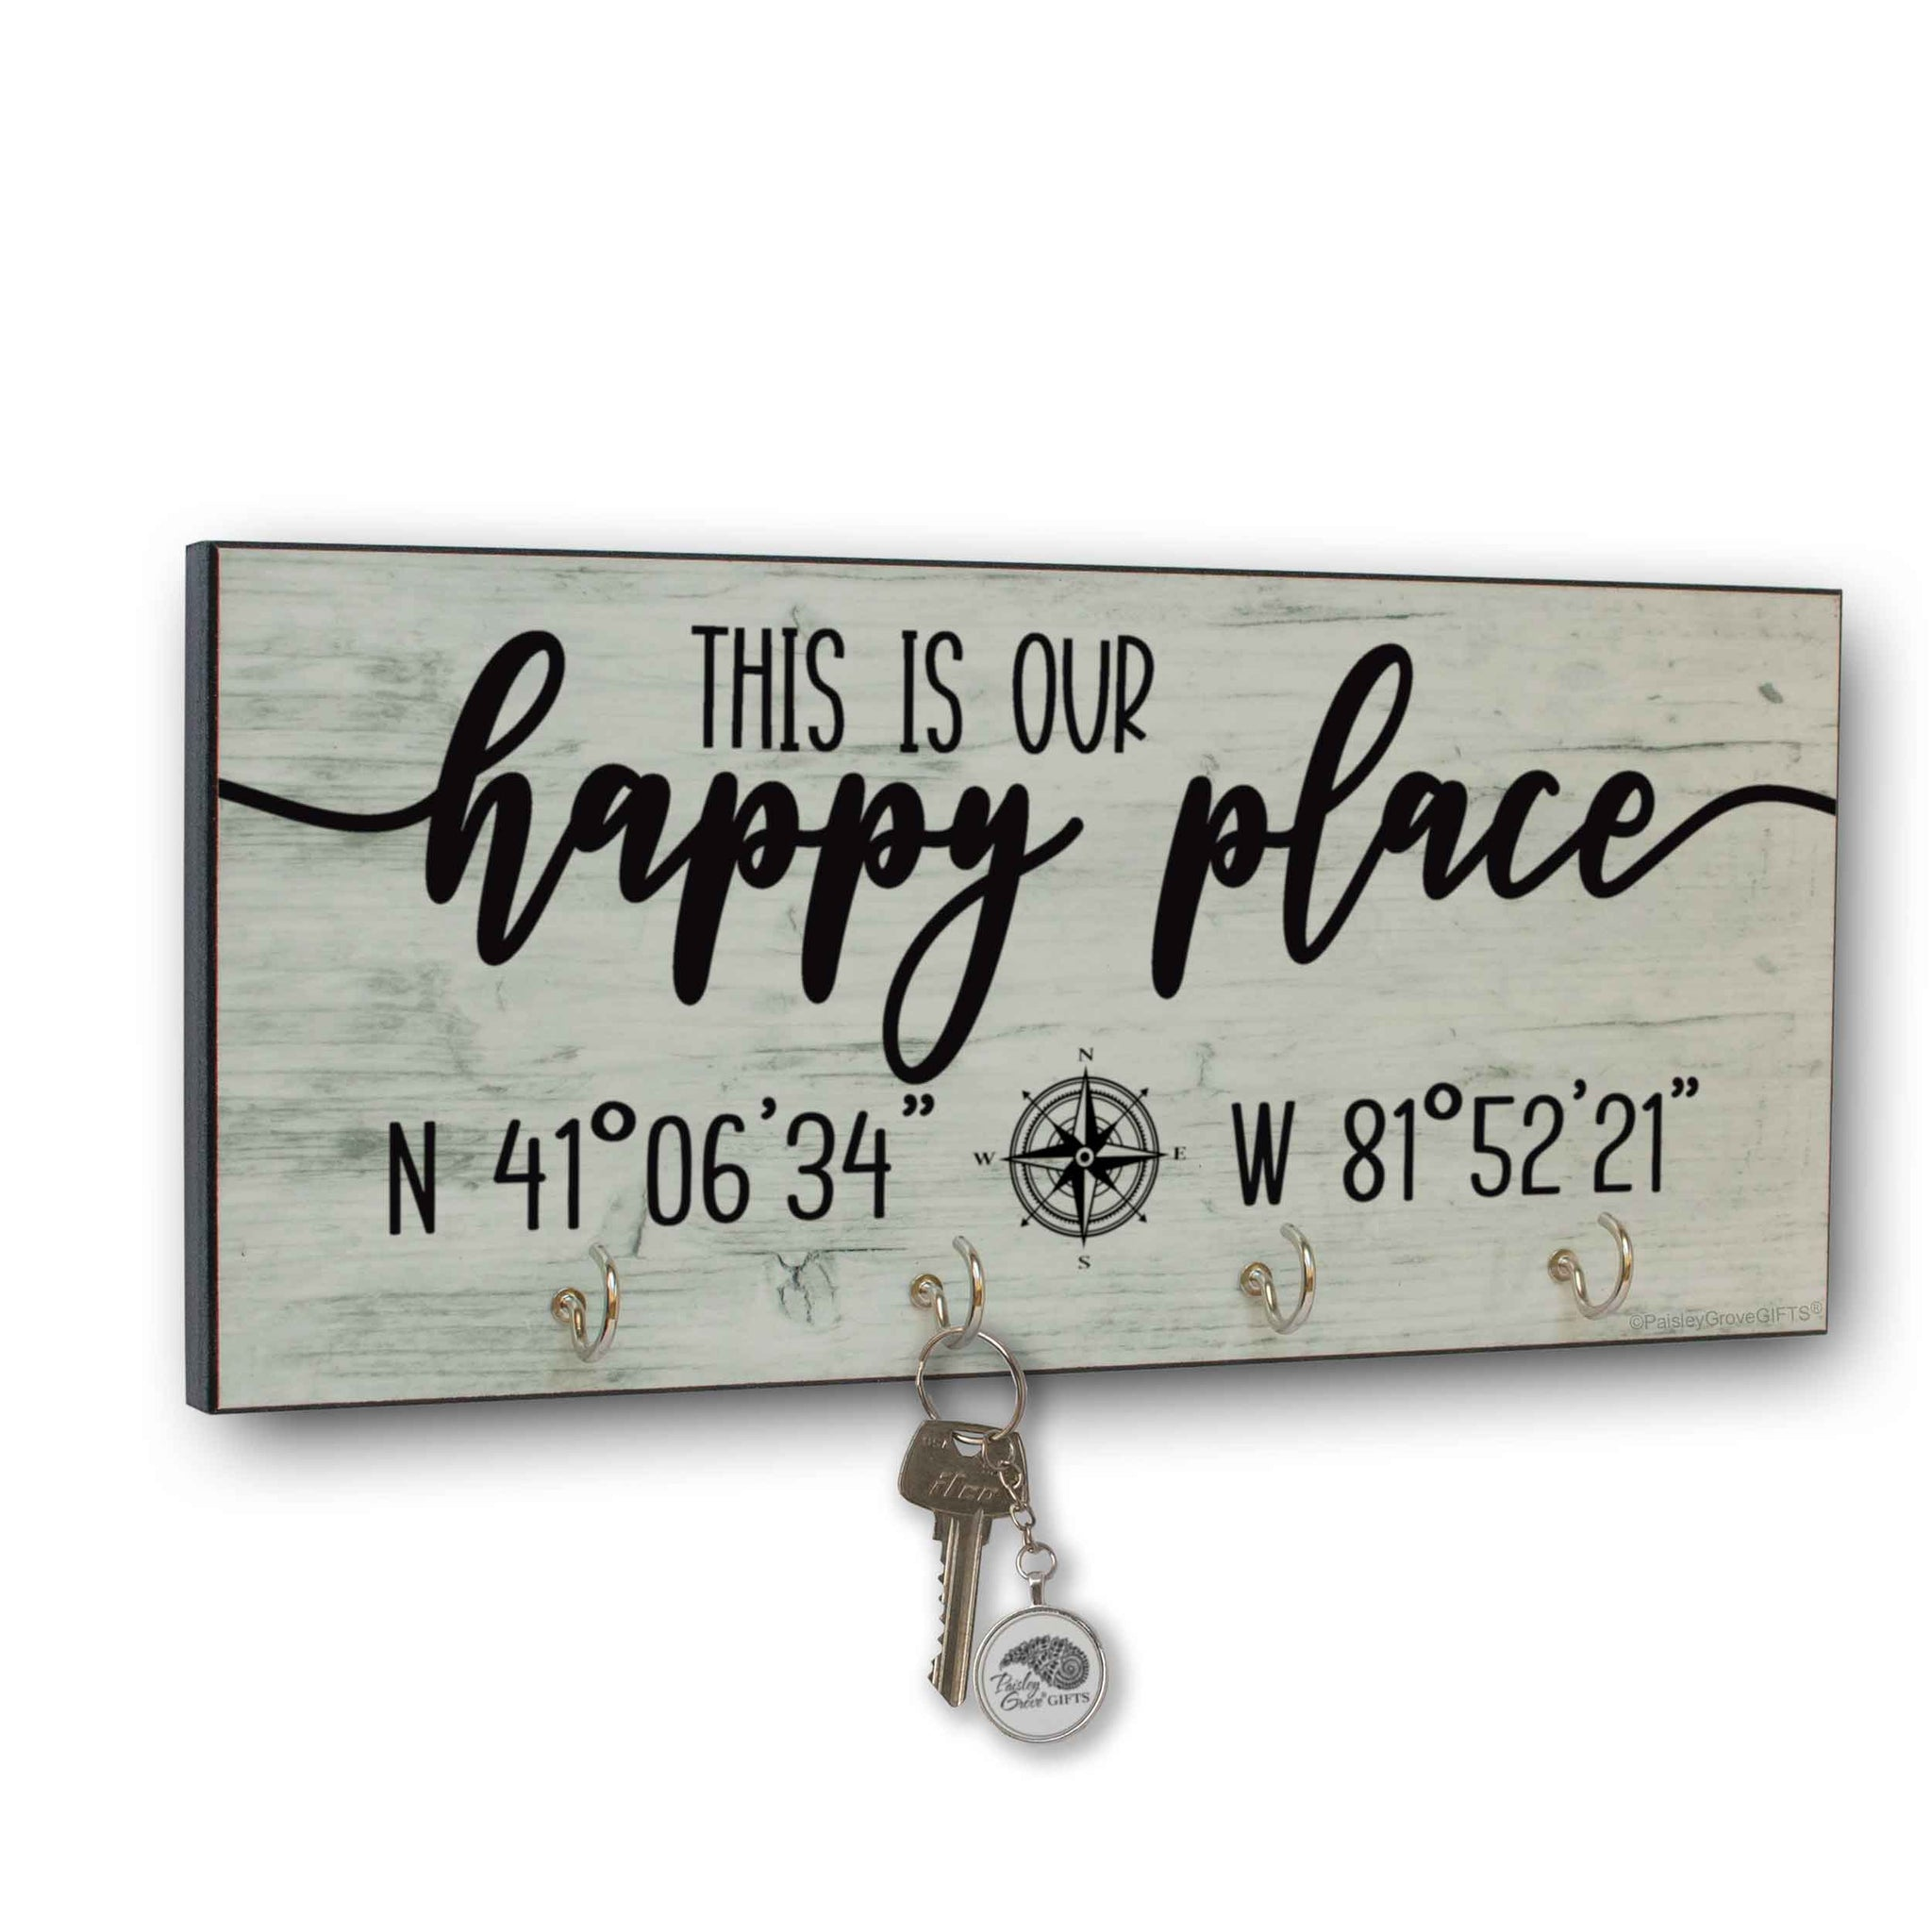 This is our Happy Place Key Holder for Wall with Coordinates - S300c1